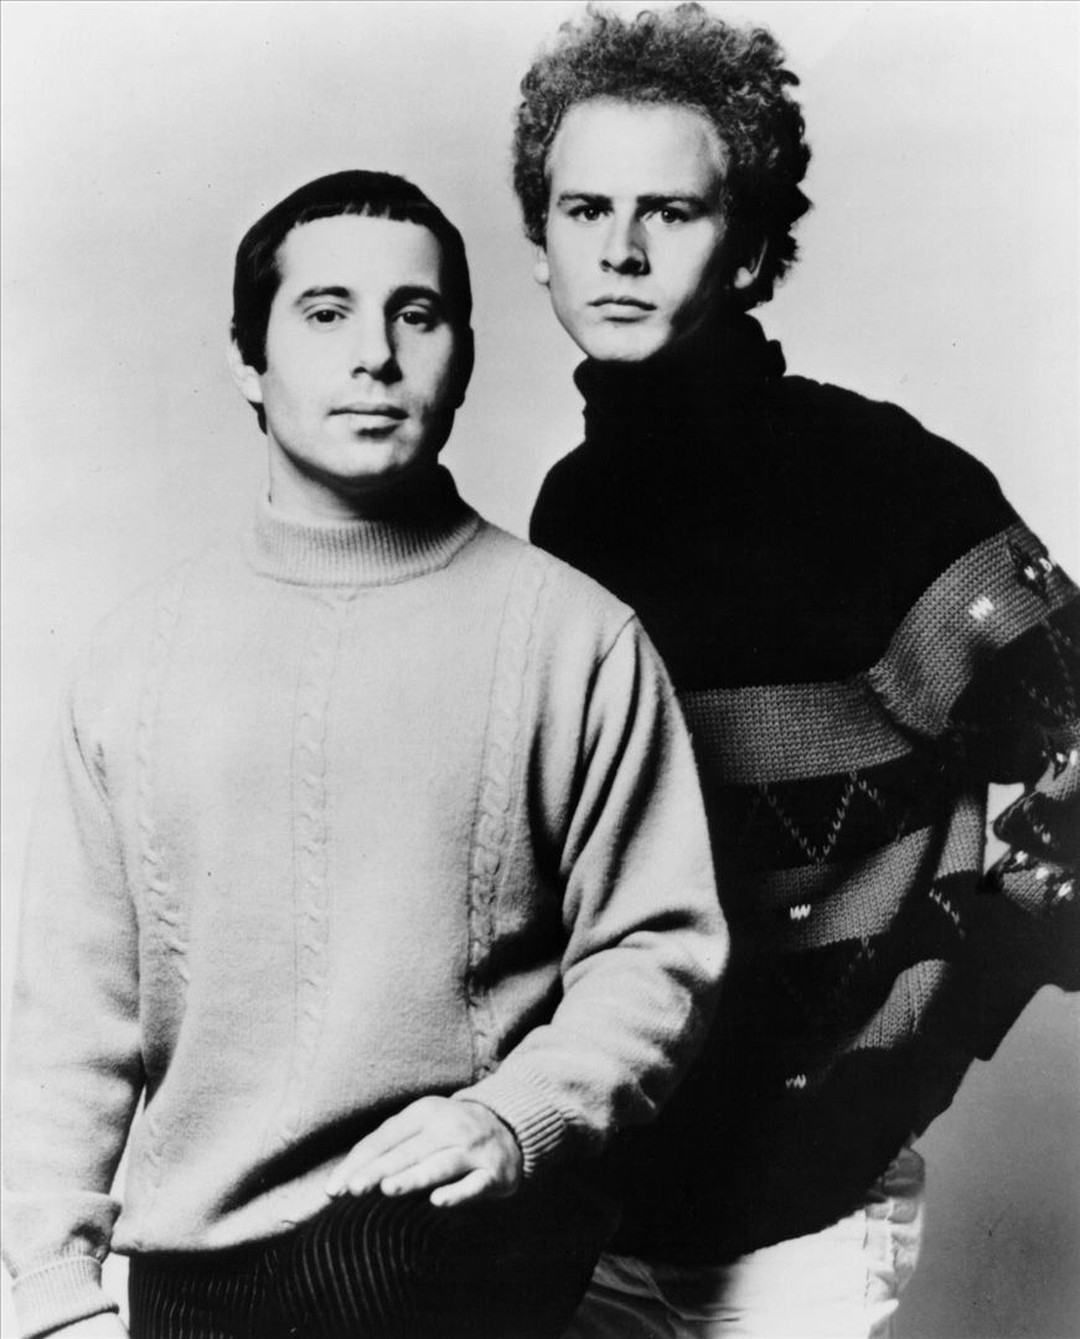 99 Miles From La Art Garfunkel 99 miles from l.a.art garfunkel - pandora